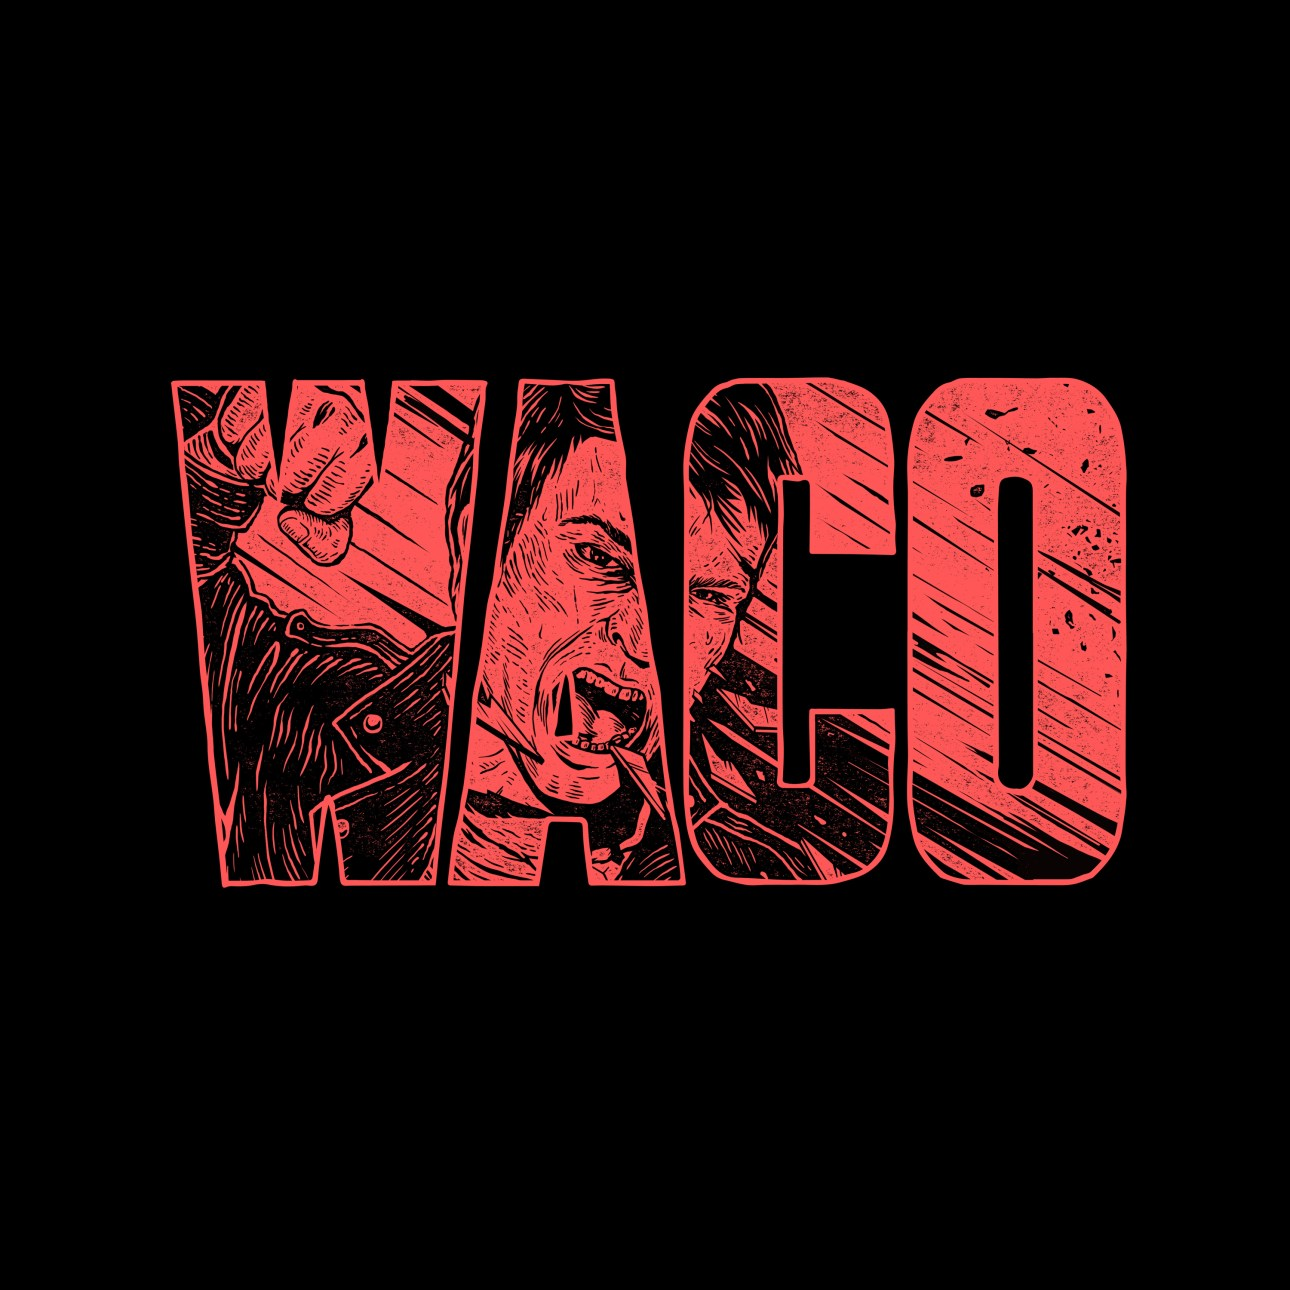 Violent Soho - WACO album art